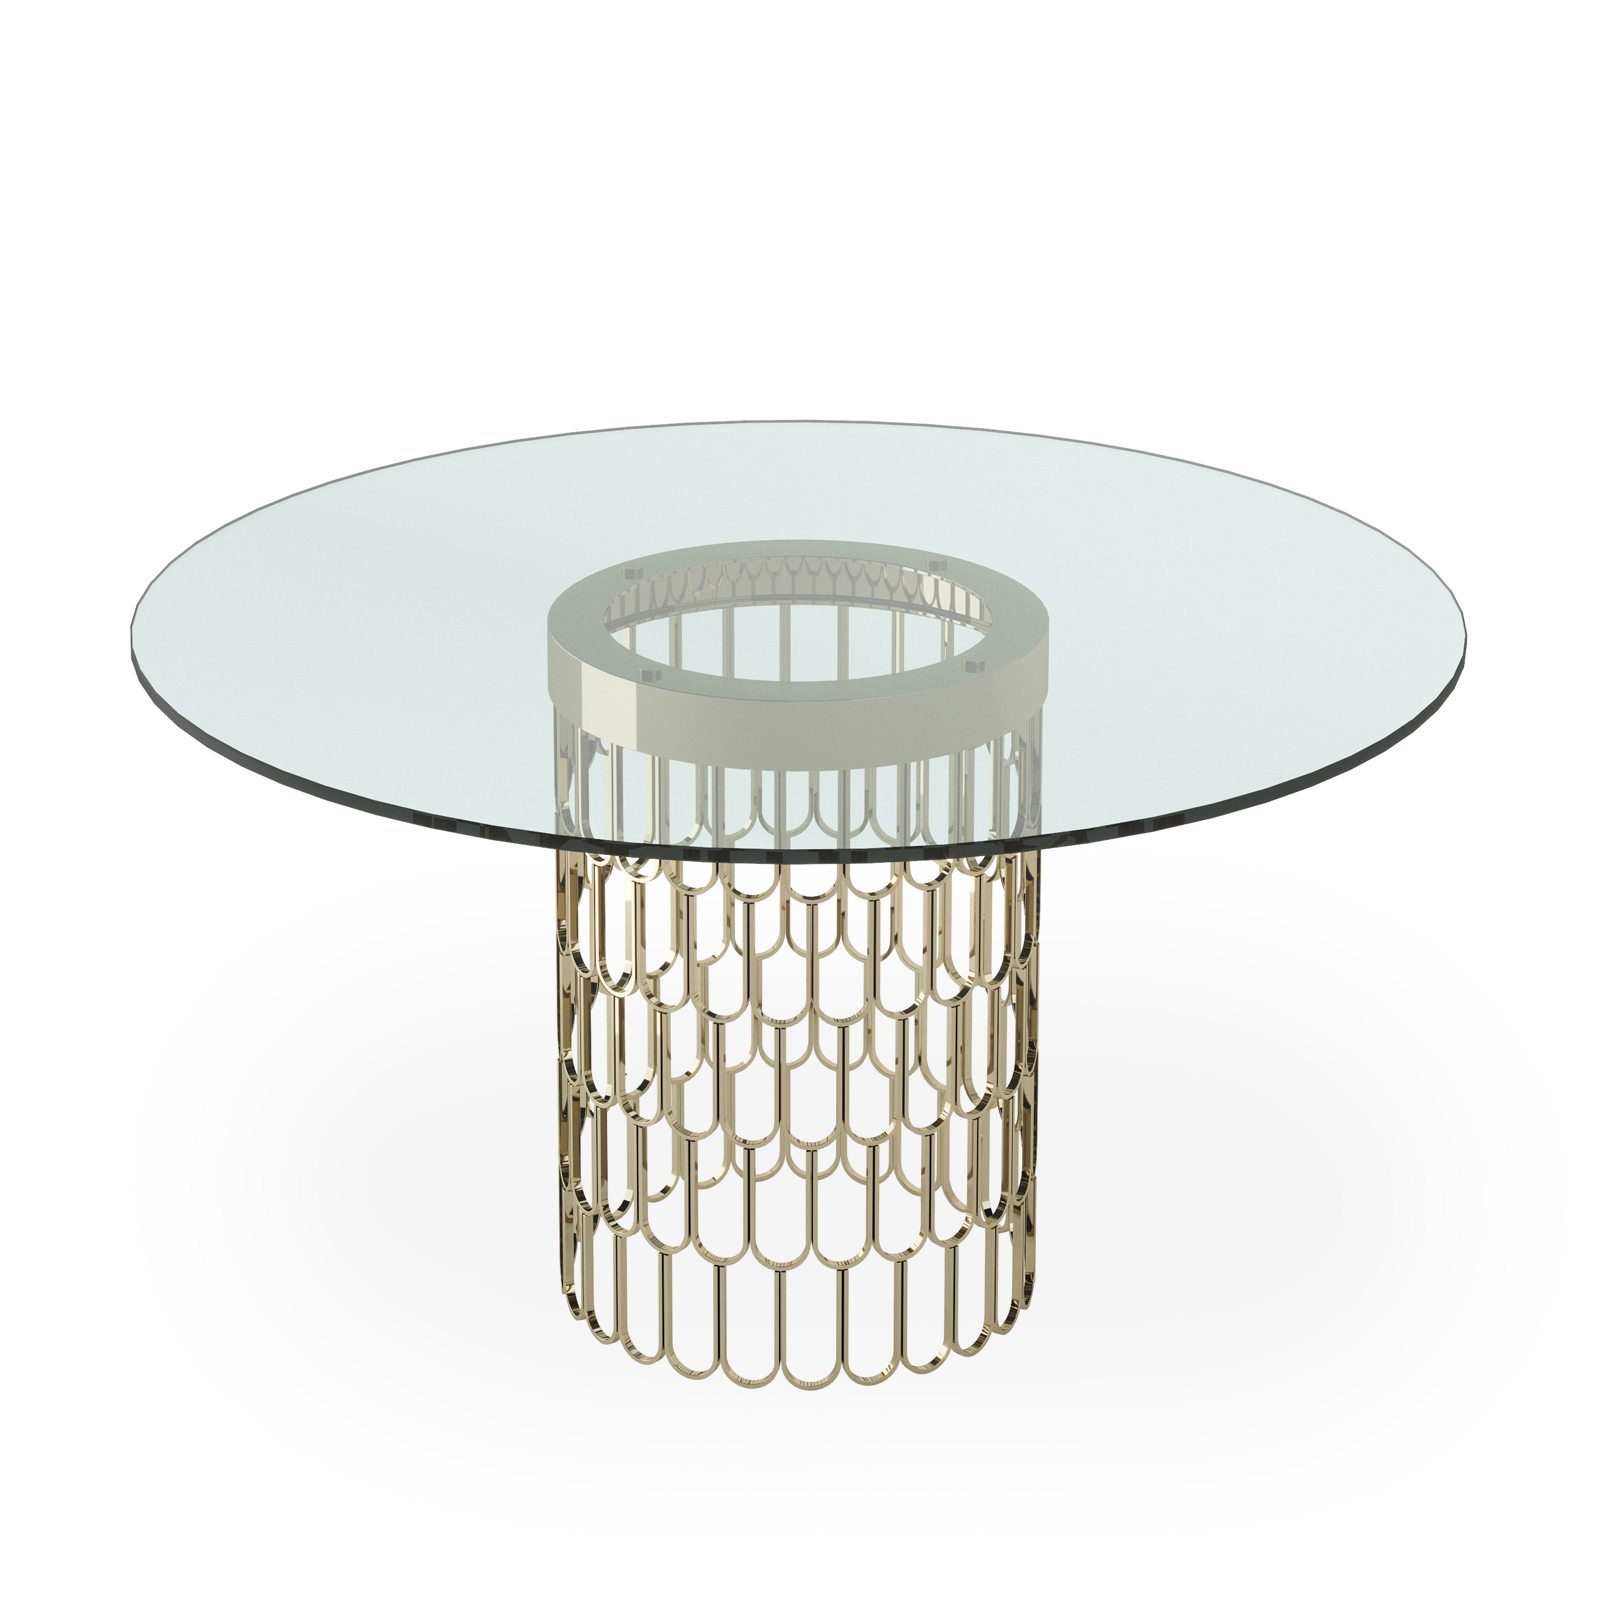 Feather Round Dining Table by Bonham & Bonham